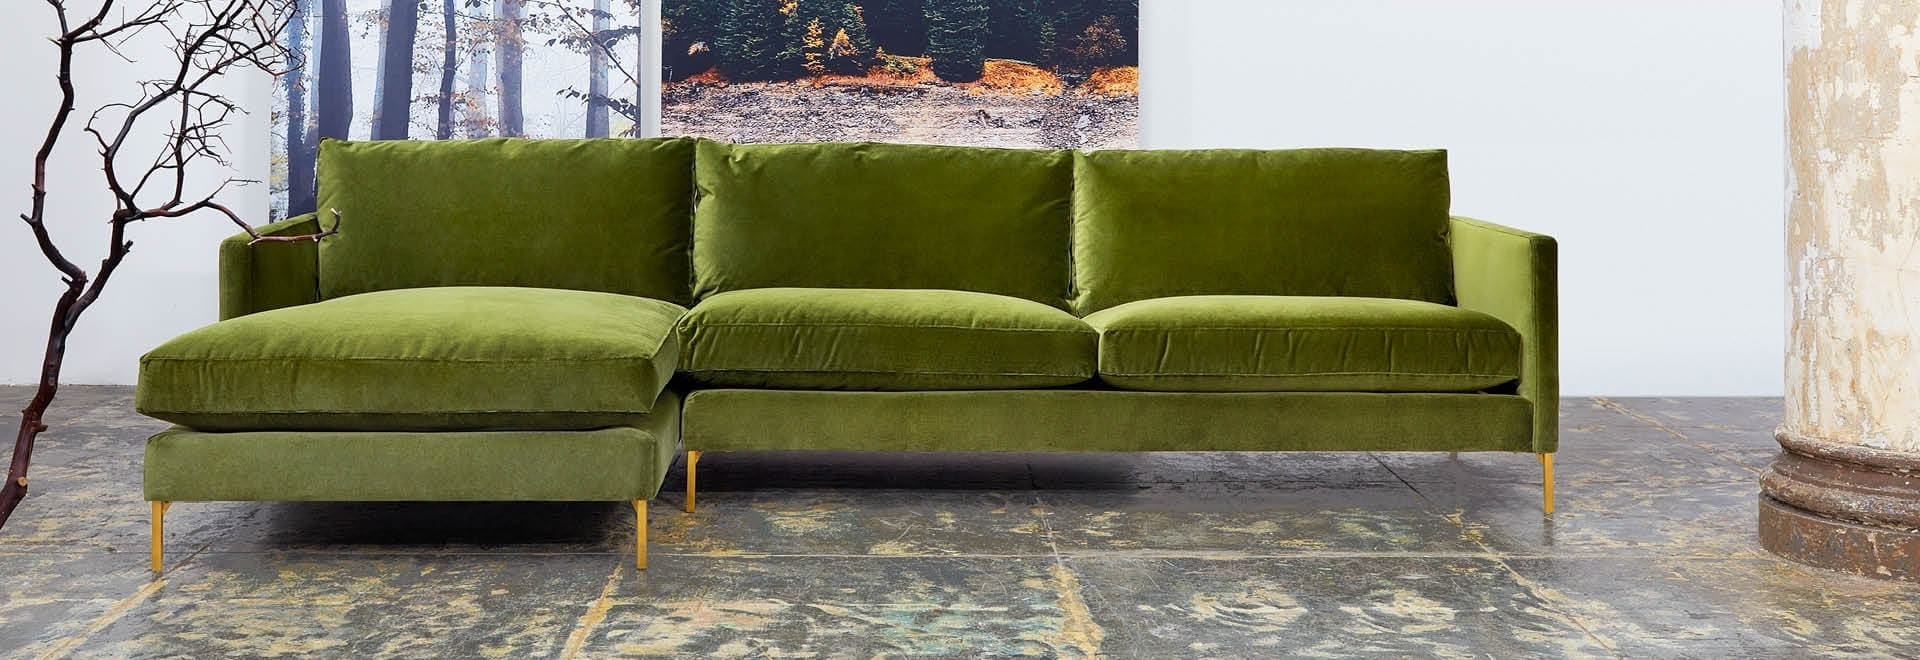 Nyc Sectional Sofas With Regard To 2017 Modern Sectional Sofas For Nyc Apartments At Abc Home (View 9 of 15)